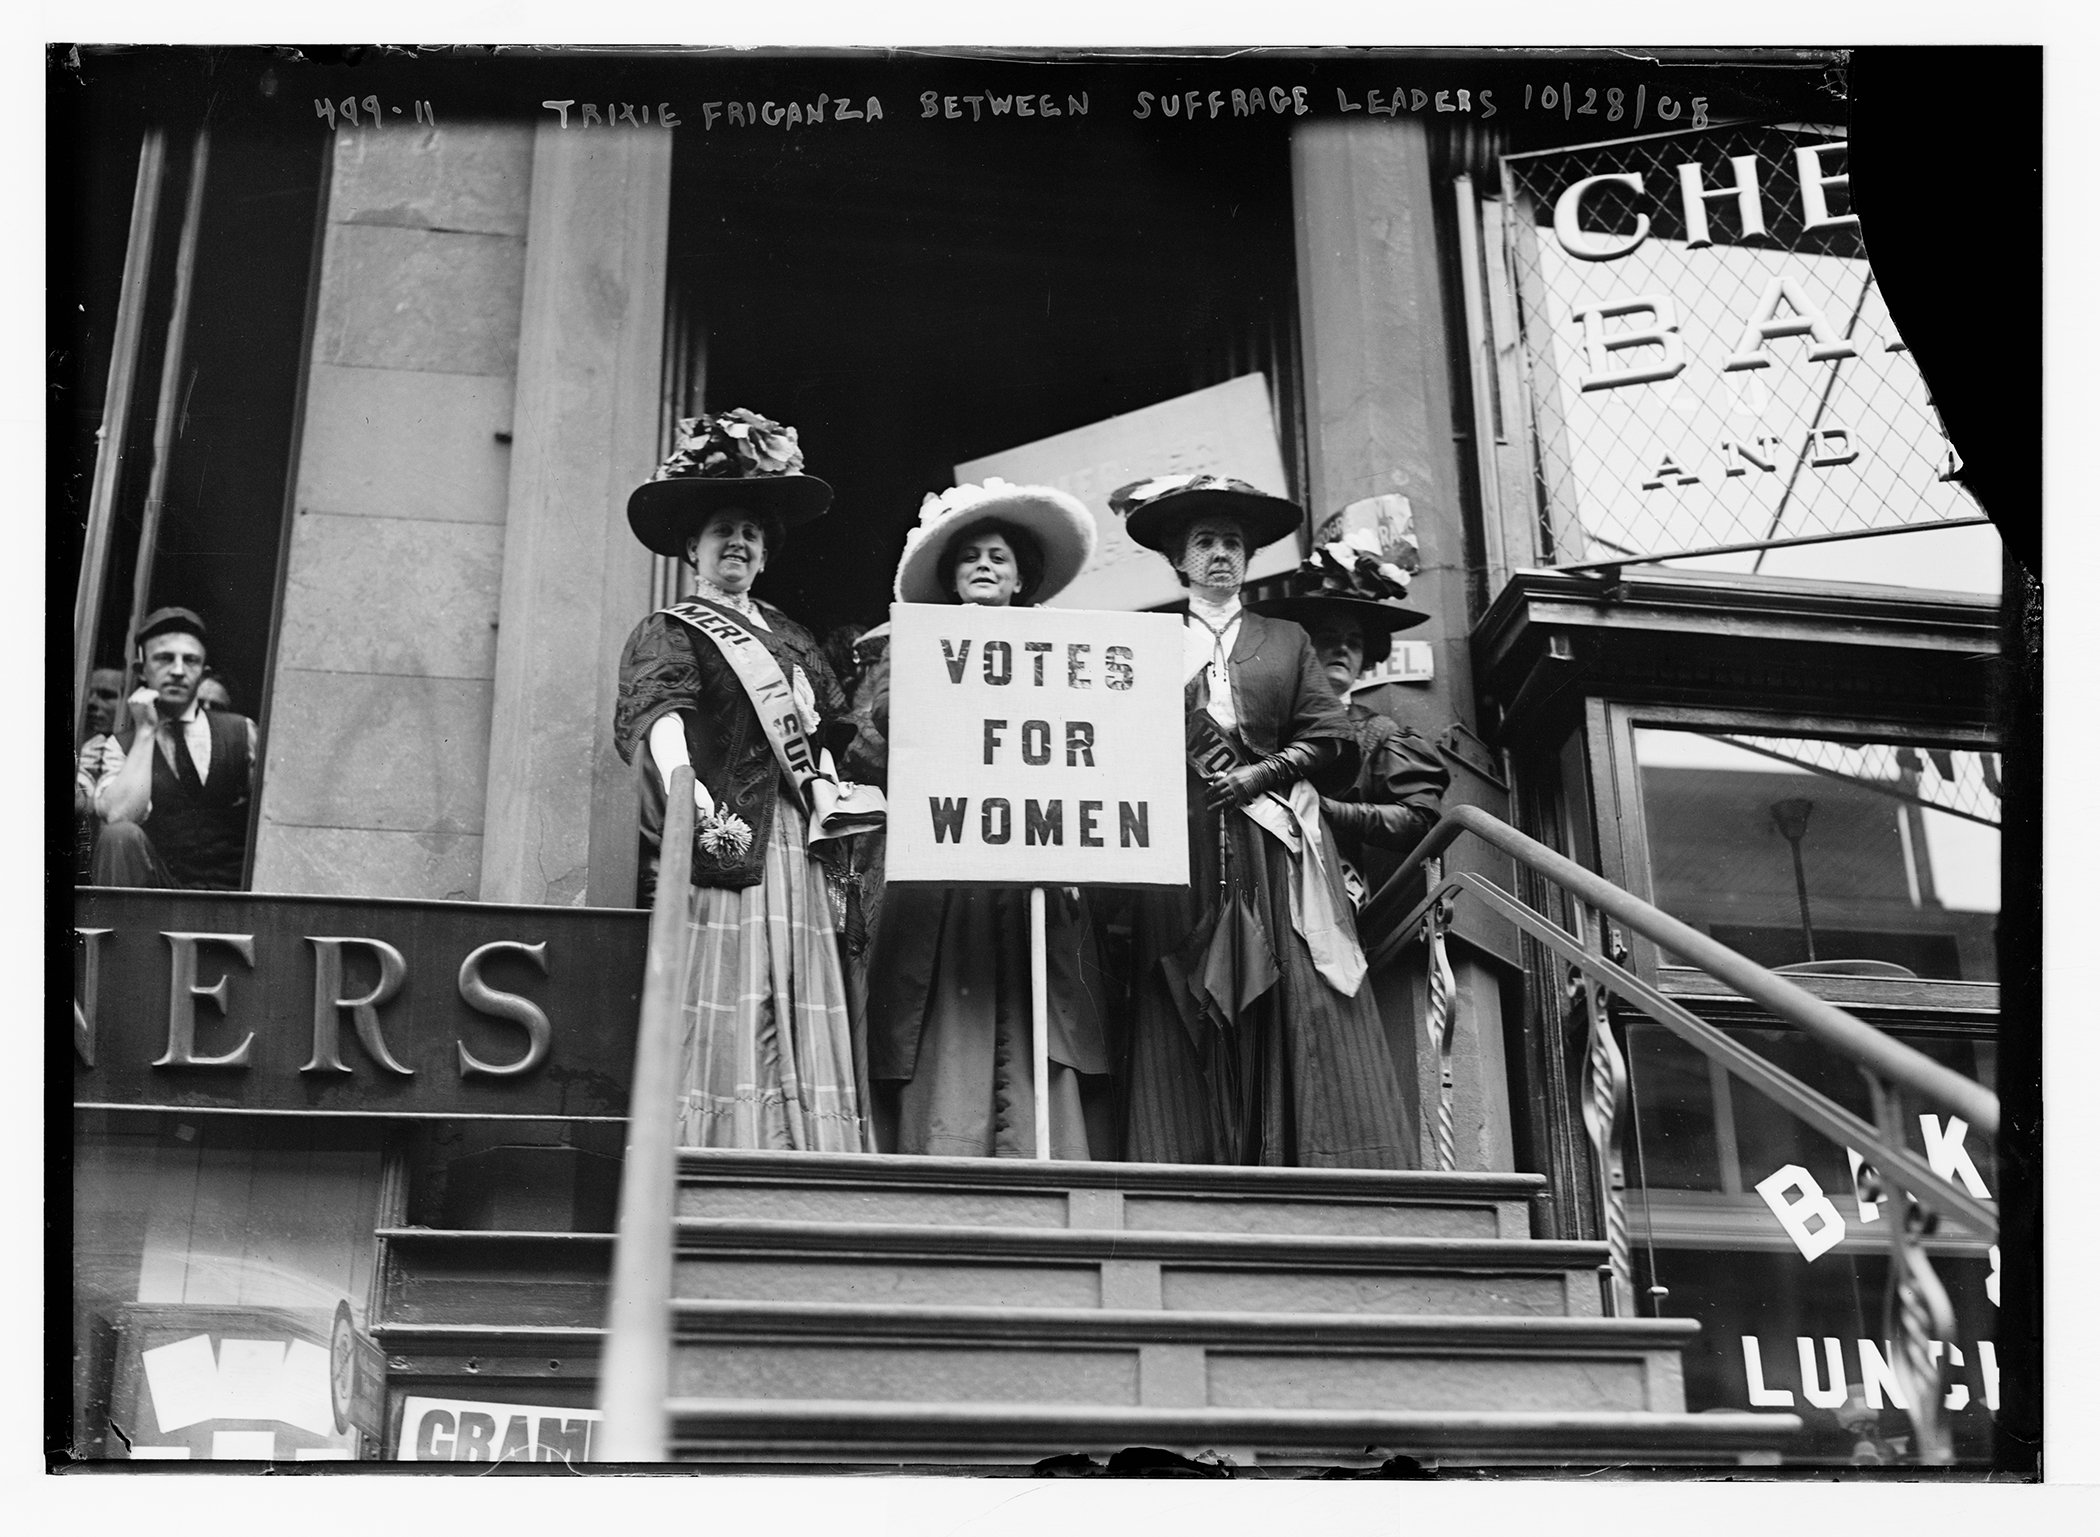 Suffragettes-Womens-Voting-Rights-United-States.jpg